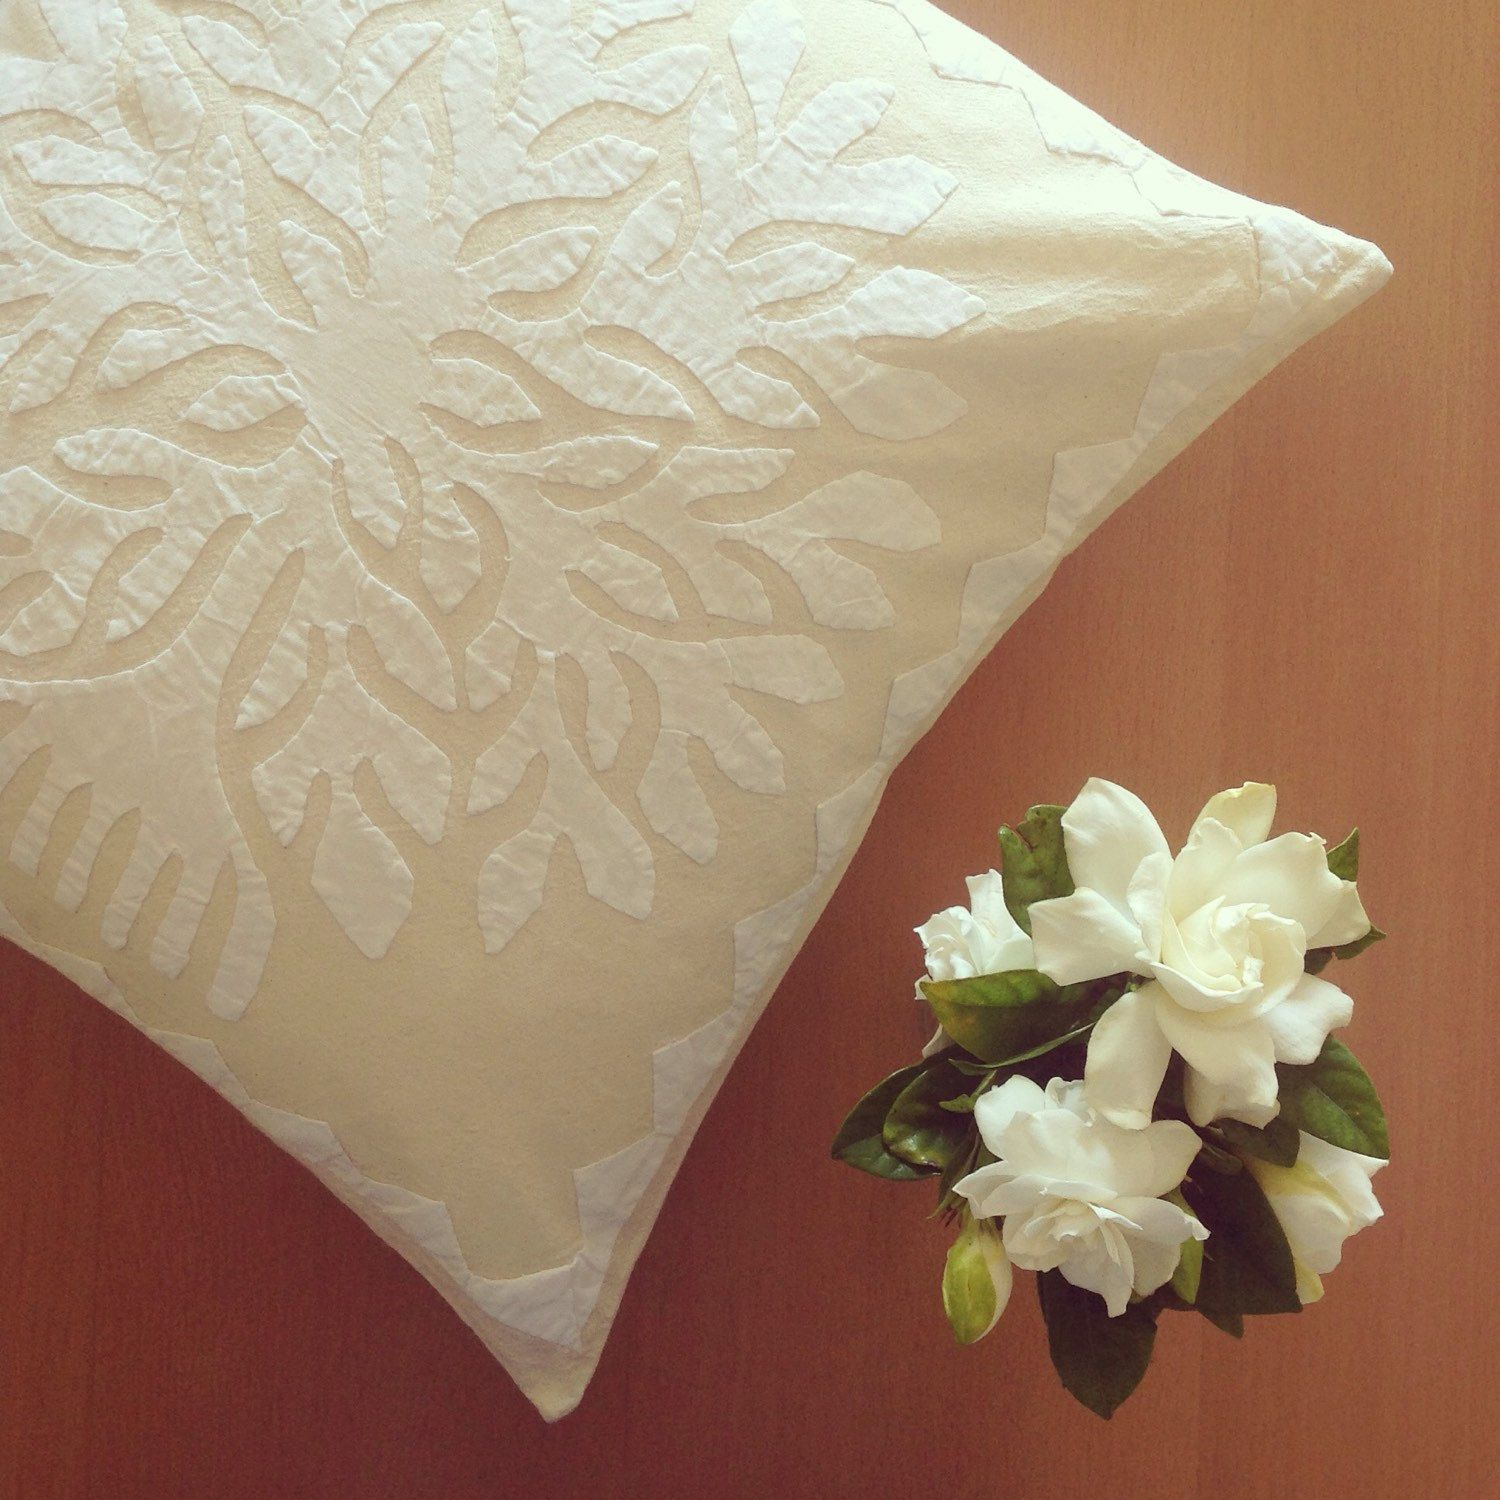 Tree Appliqu Cushion Cover Speaks Simplicity Subtlety And Pure